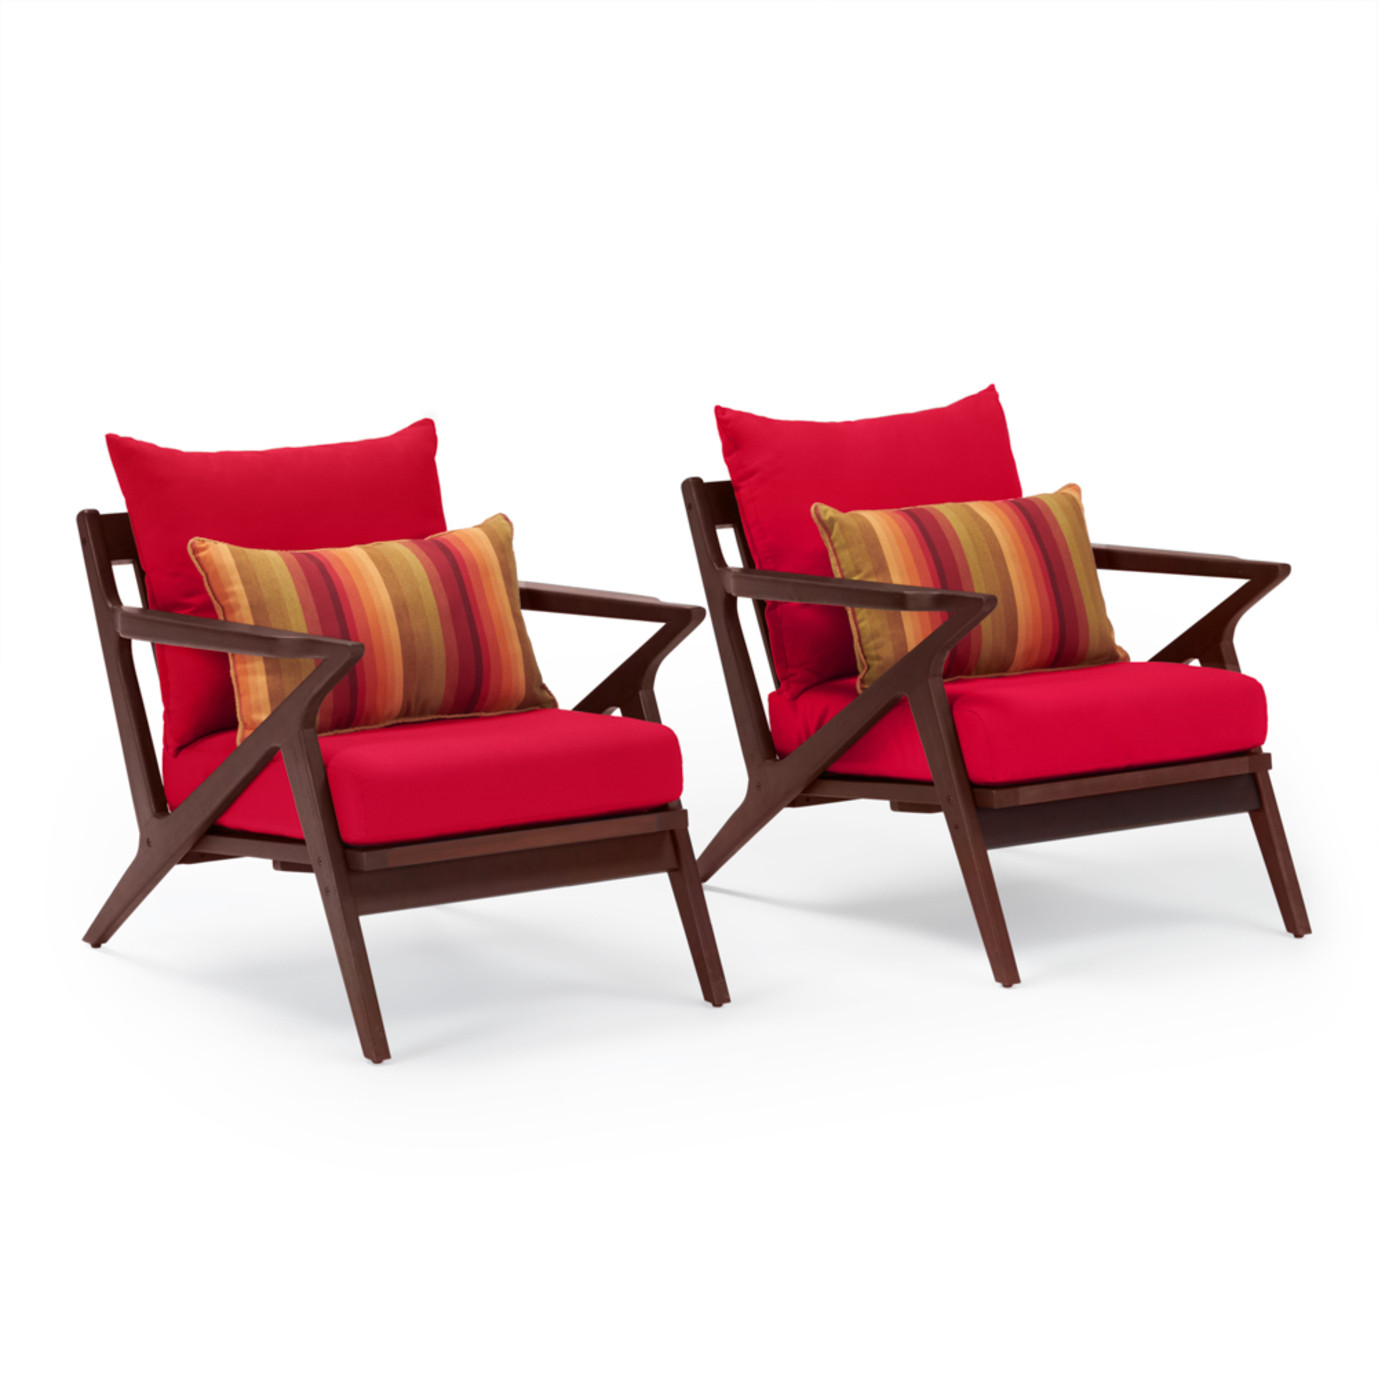 Vaughn Club Chairs - Sunset Red